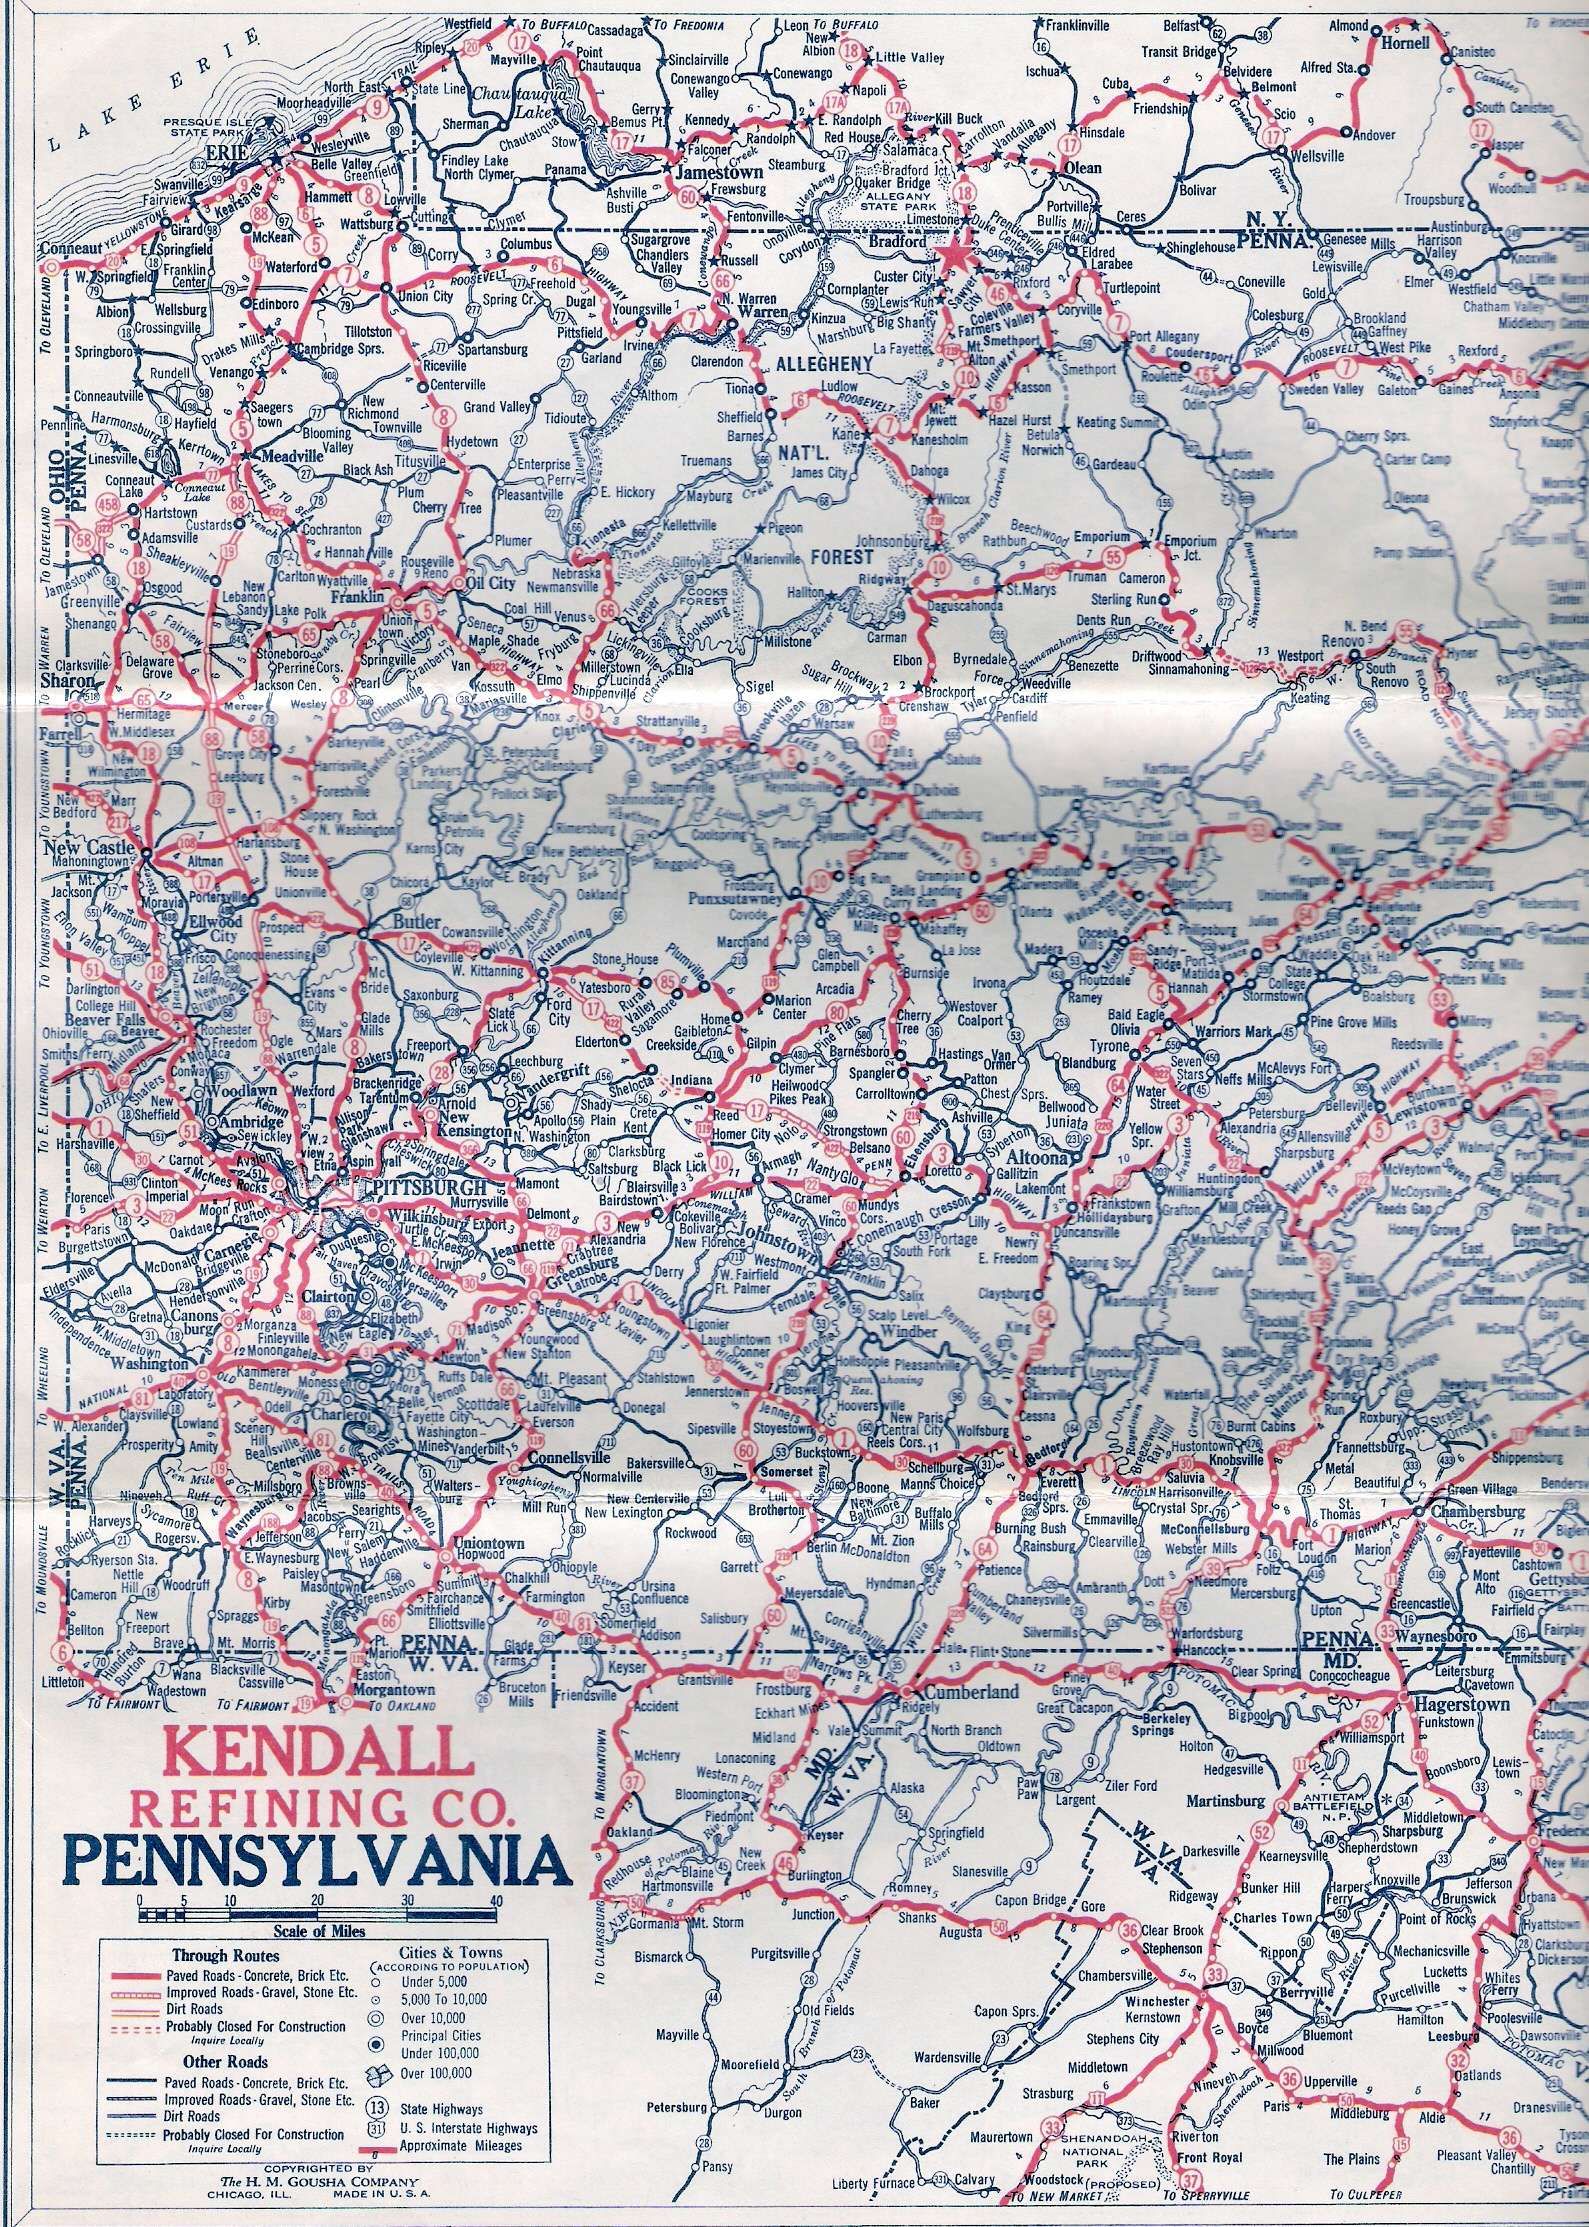 1920s Oil Company Road Maps of Pennsylvania